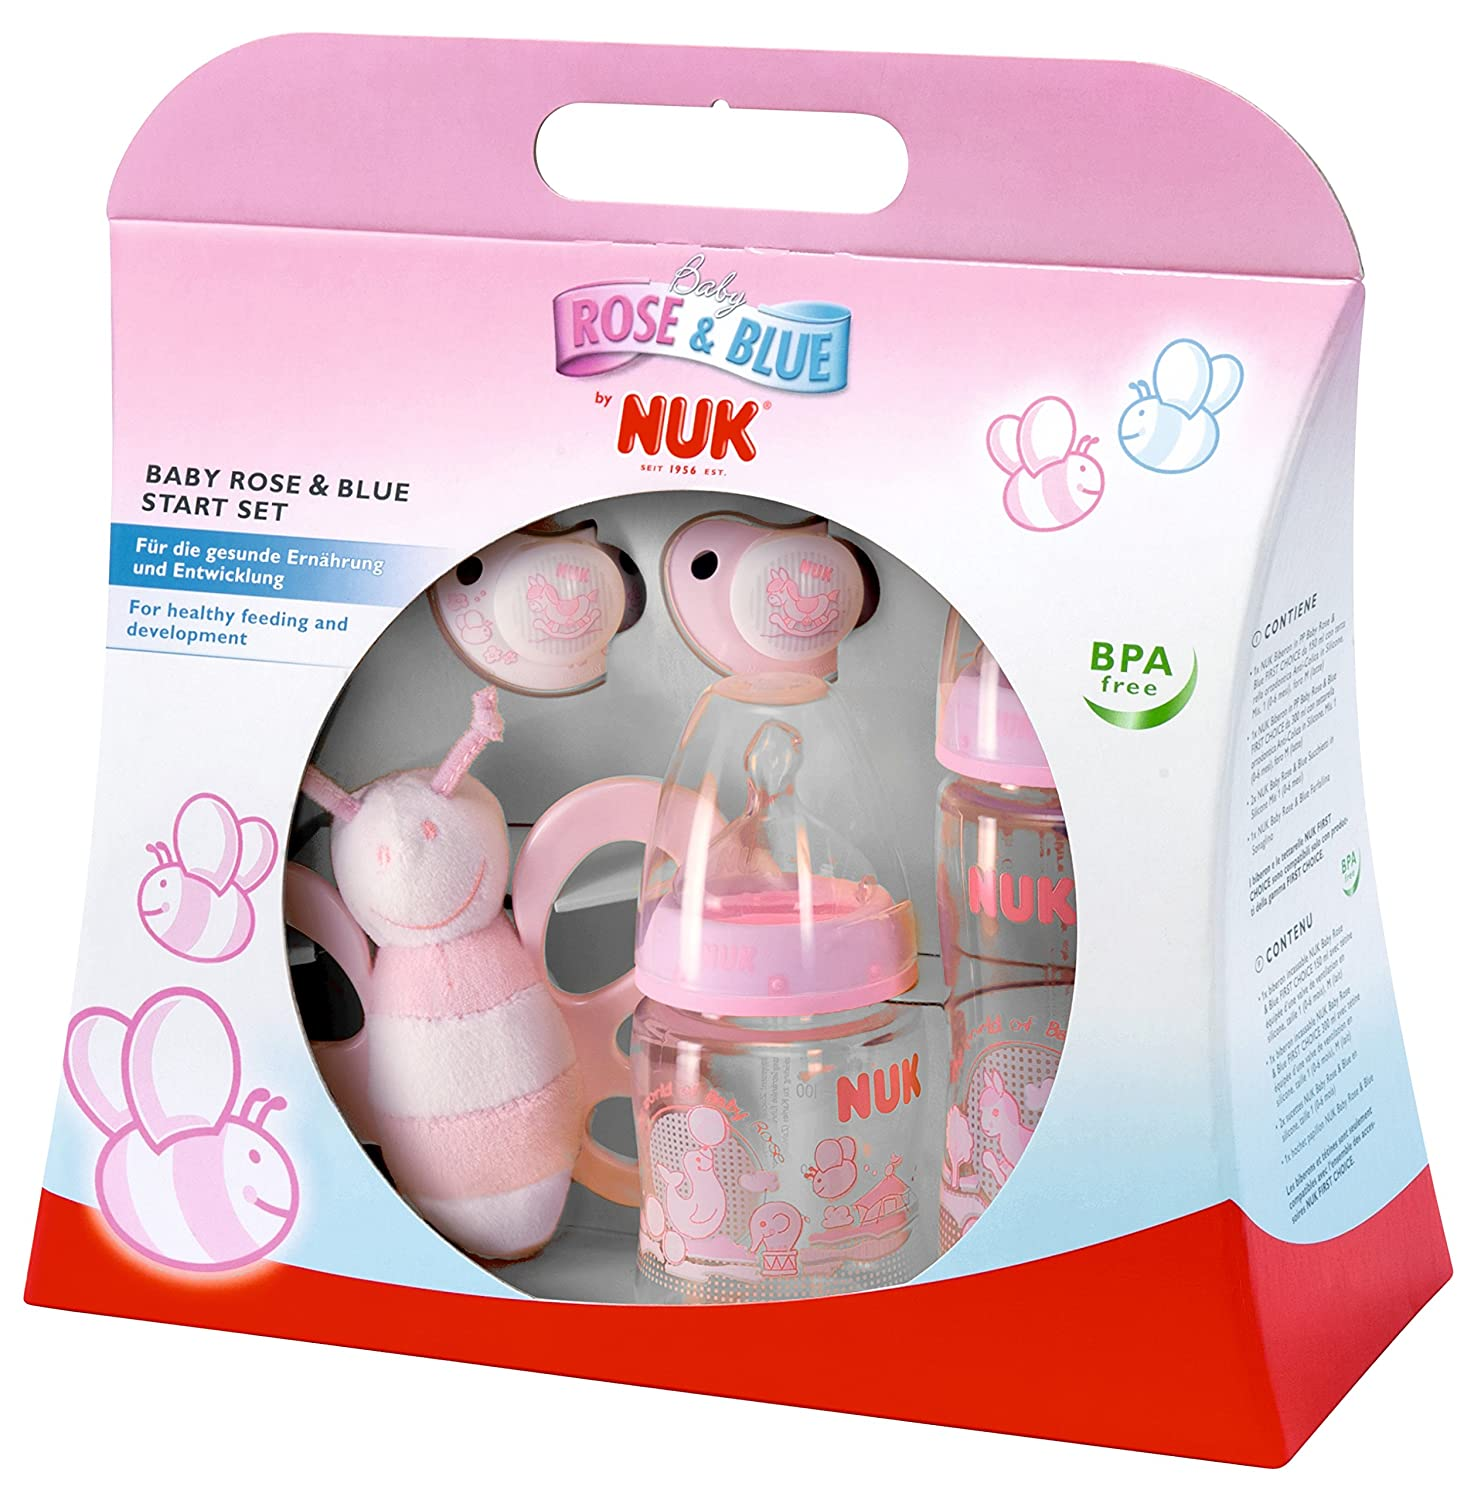 Nuk First Choice Plus Starter Set, Baby Pink and Baby Blue, Baby Bottle, Dummy and Butterfly Rattle in Attractive Gift Box, 0–6Months 0-6Months MAPA GmbH - Baby (VSS) 10260385